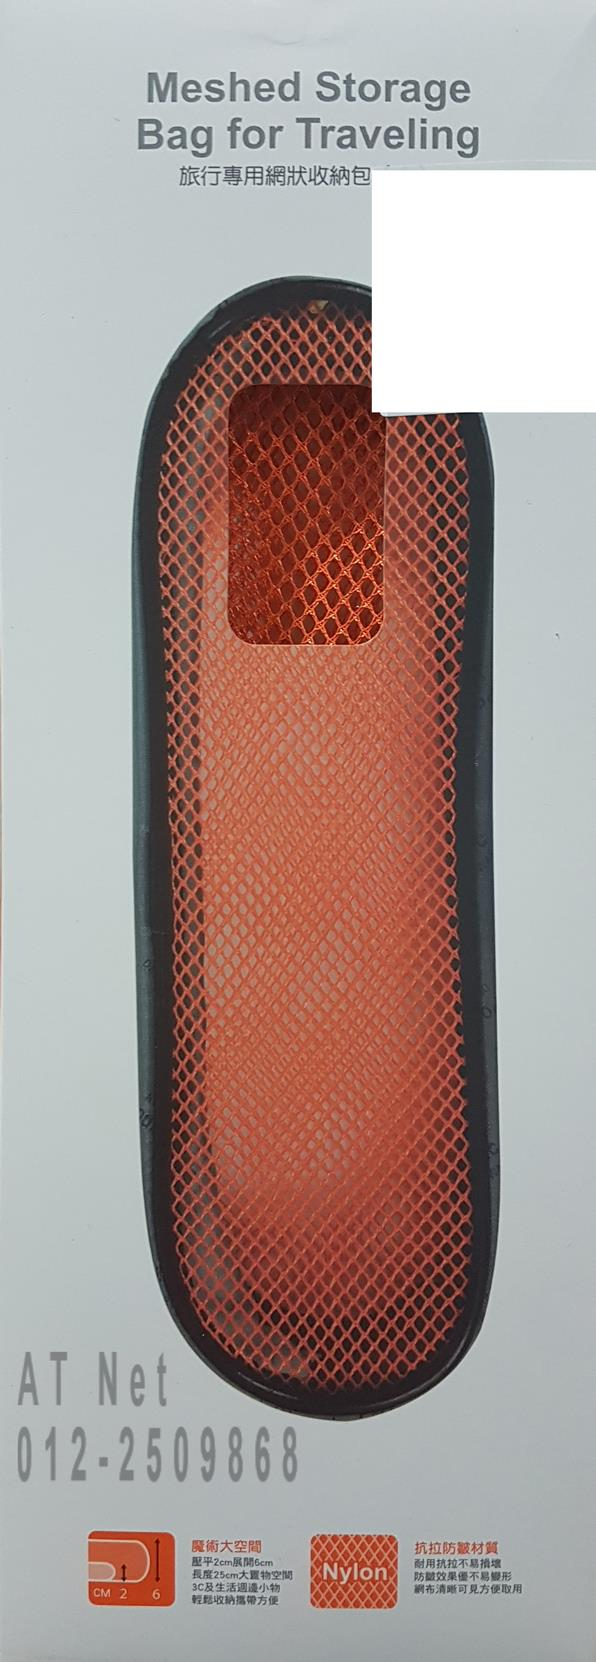 MESHED NYLON STORAGE BAG FOR TRAVELING